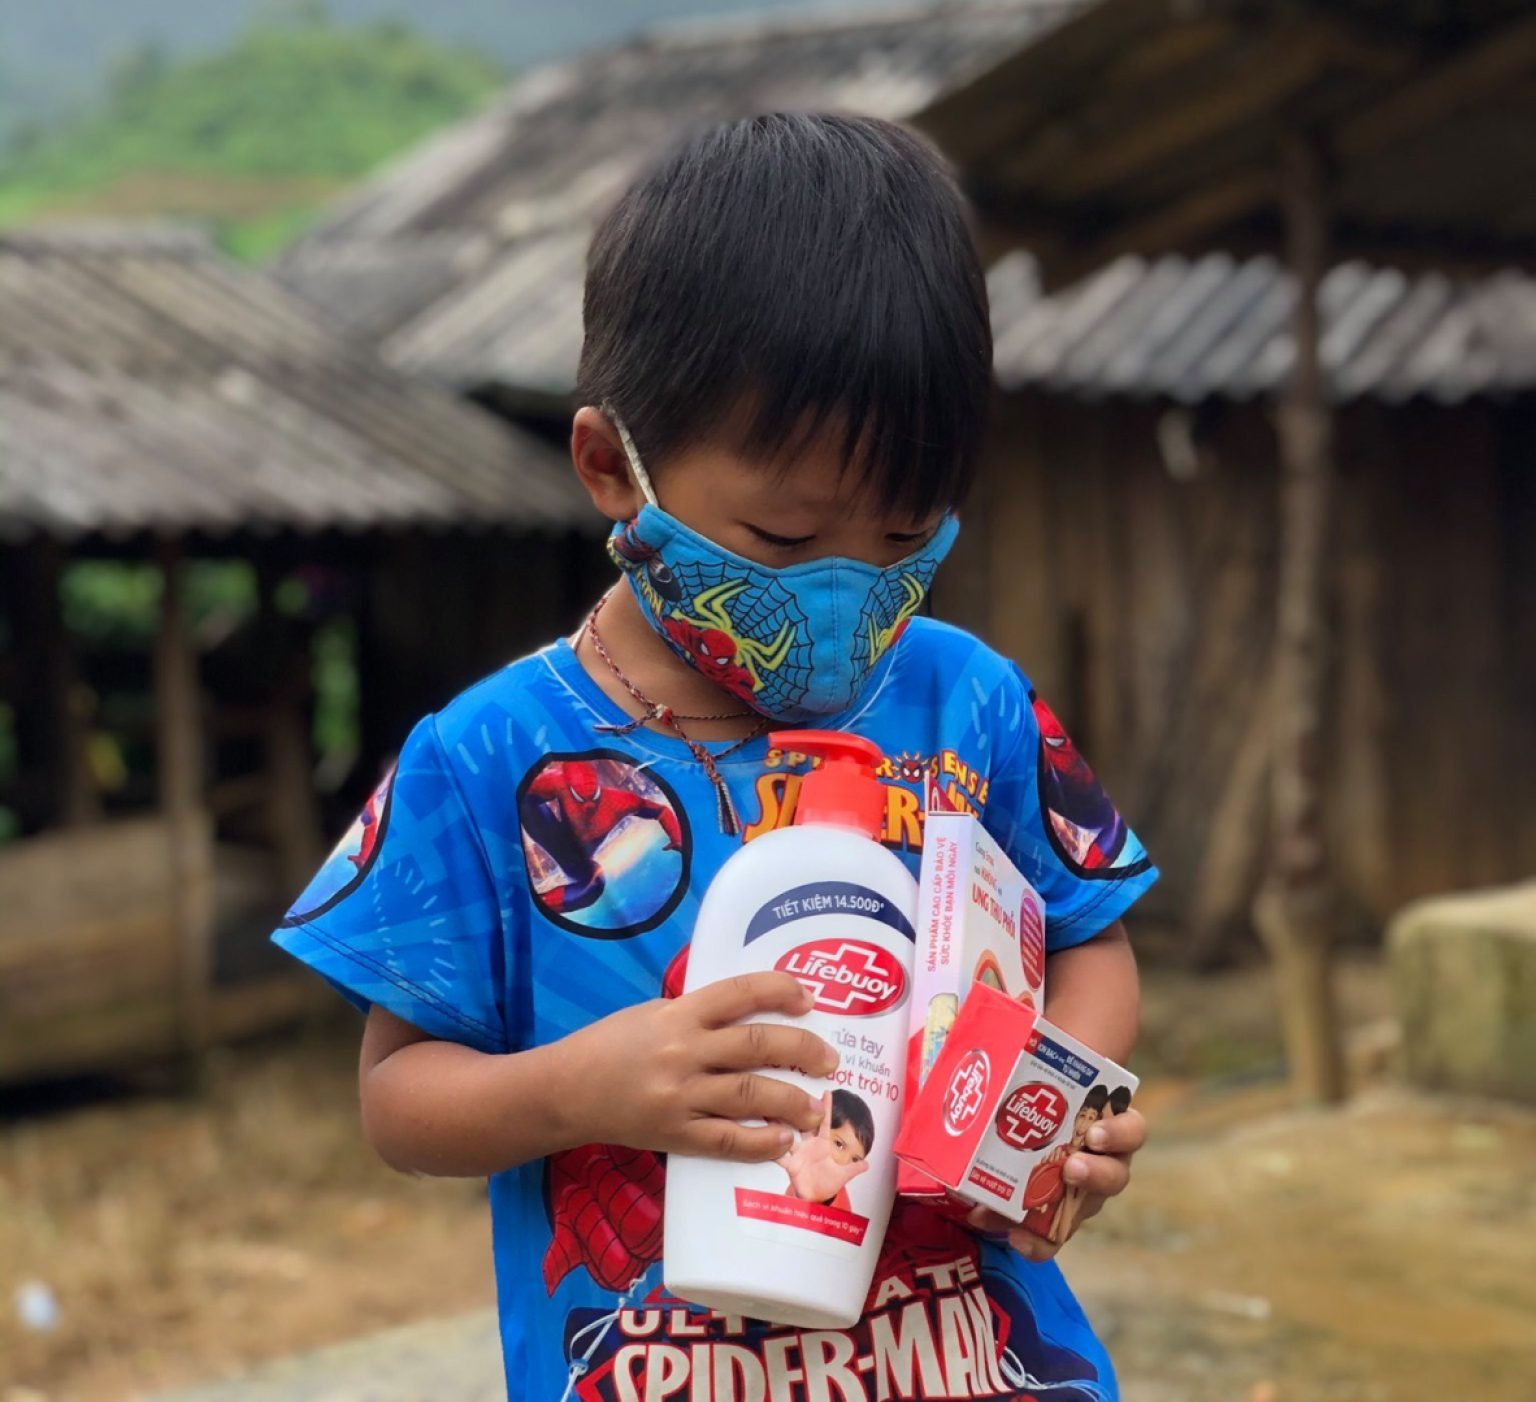 A boy holds hand sanitizer and masks that he received in his COVID prevention kit from Helen Keller.